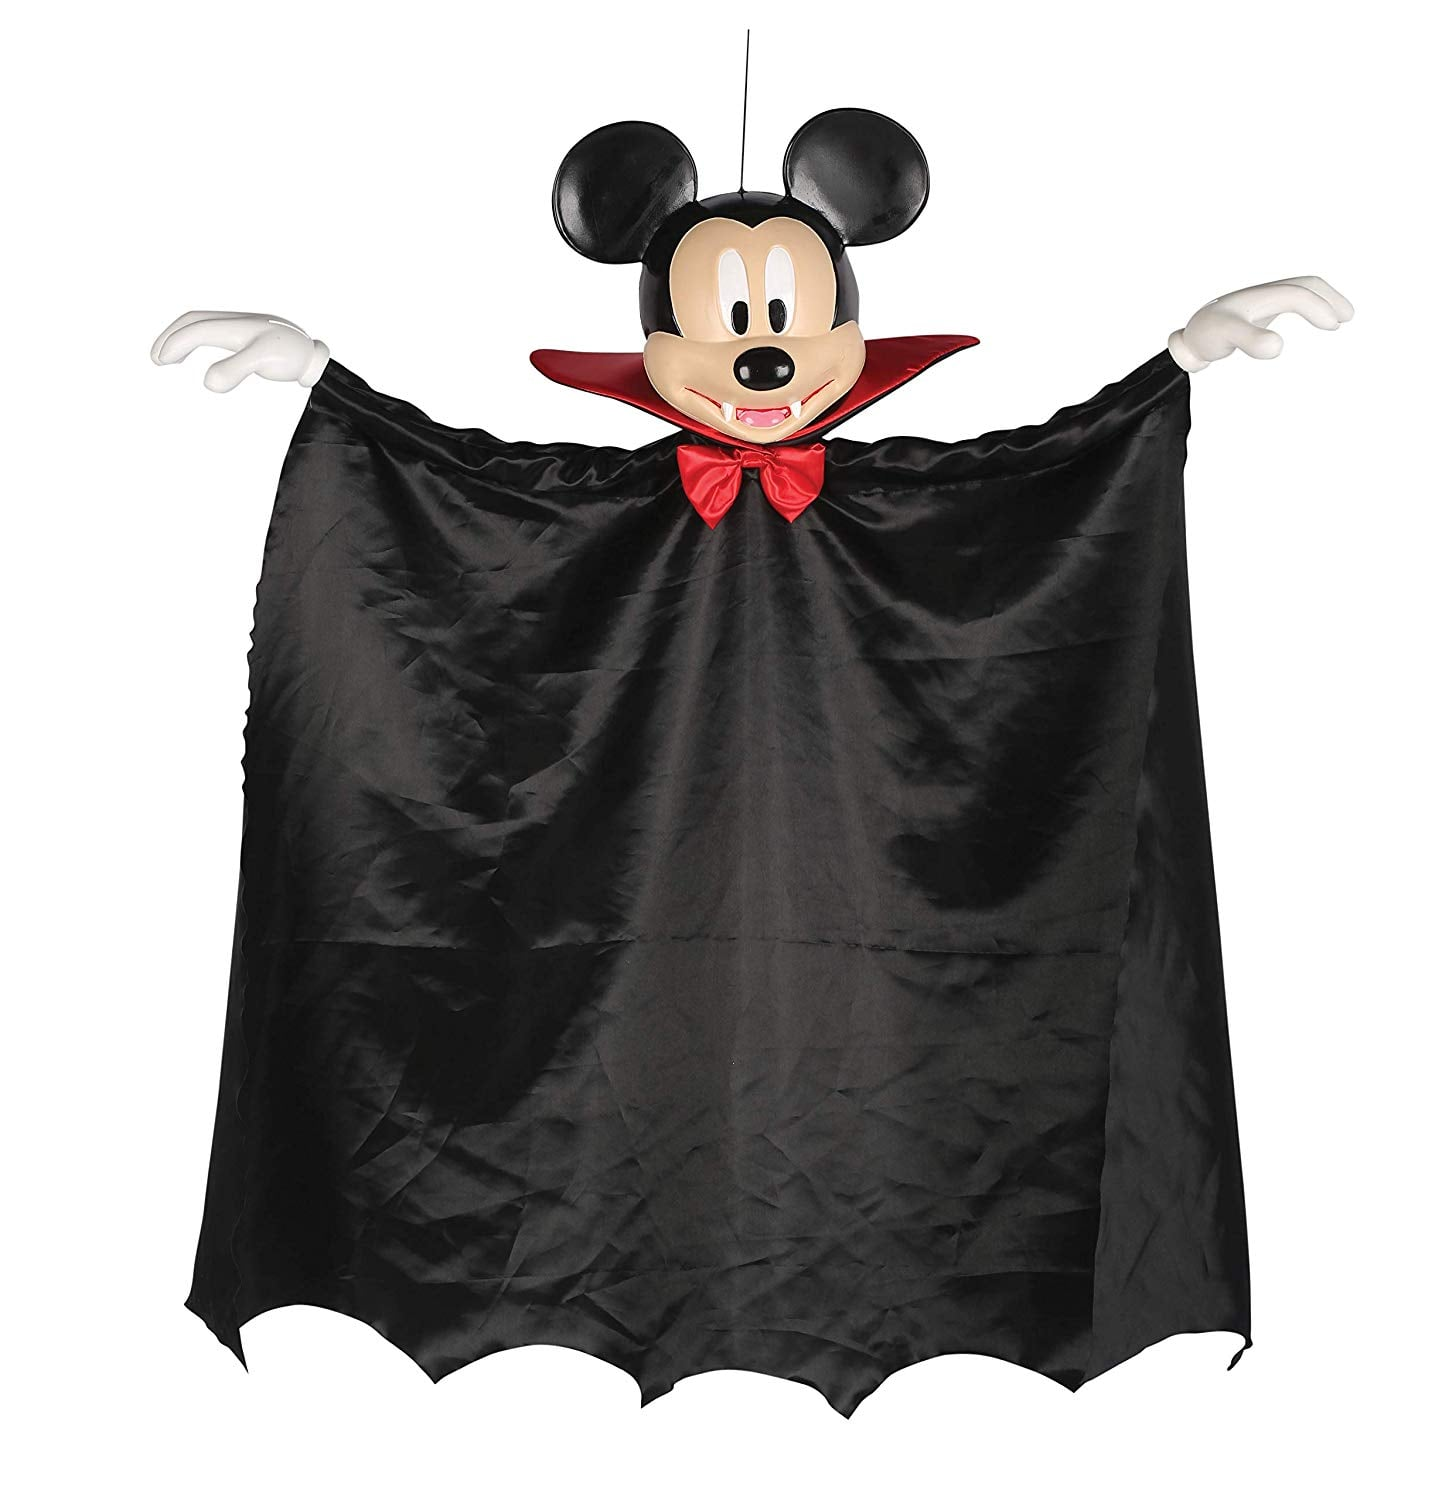 Disney Mickey Mouse Full Size Posable Hanging Character